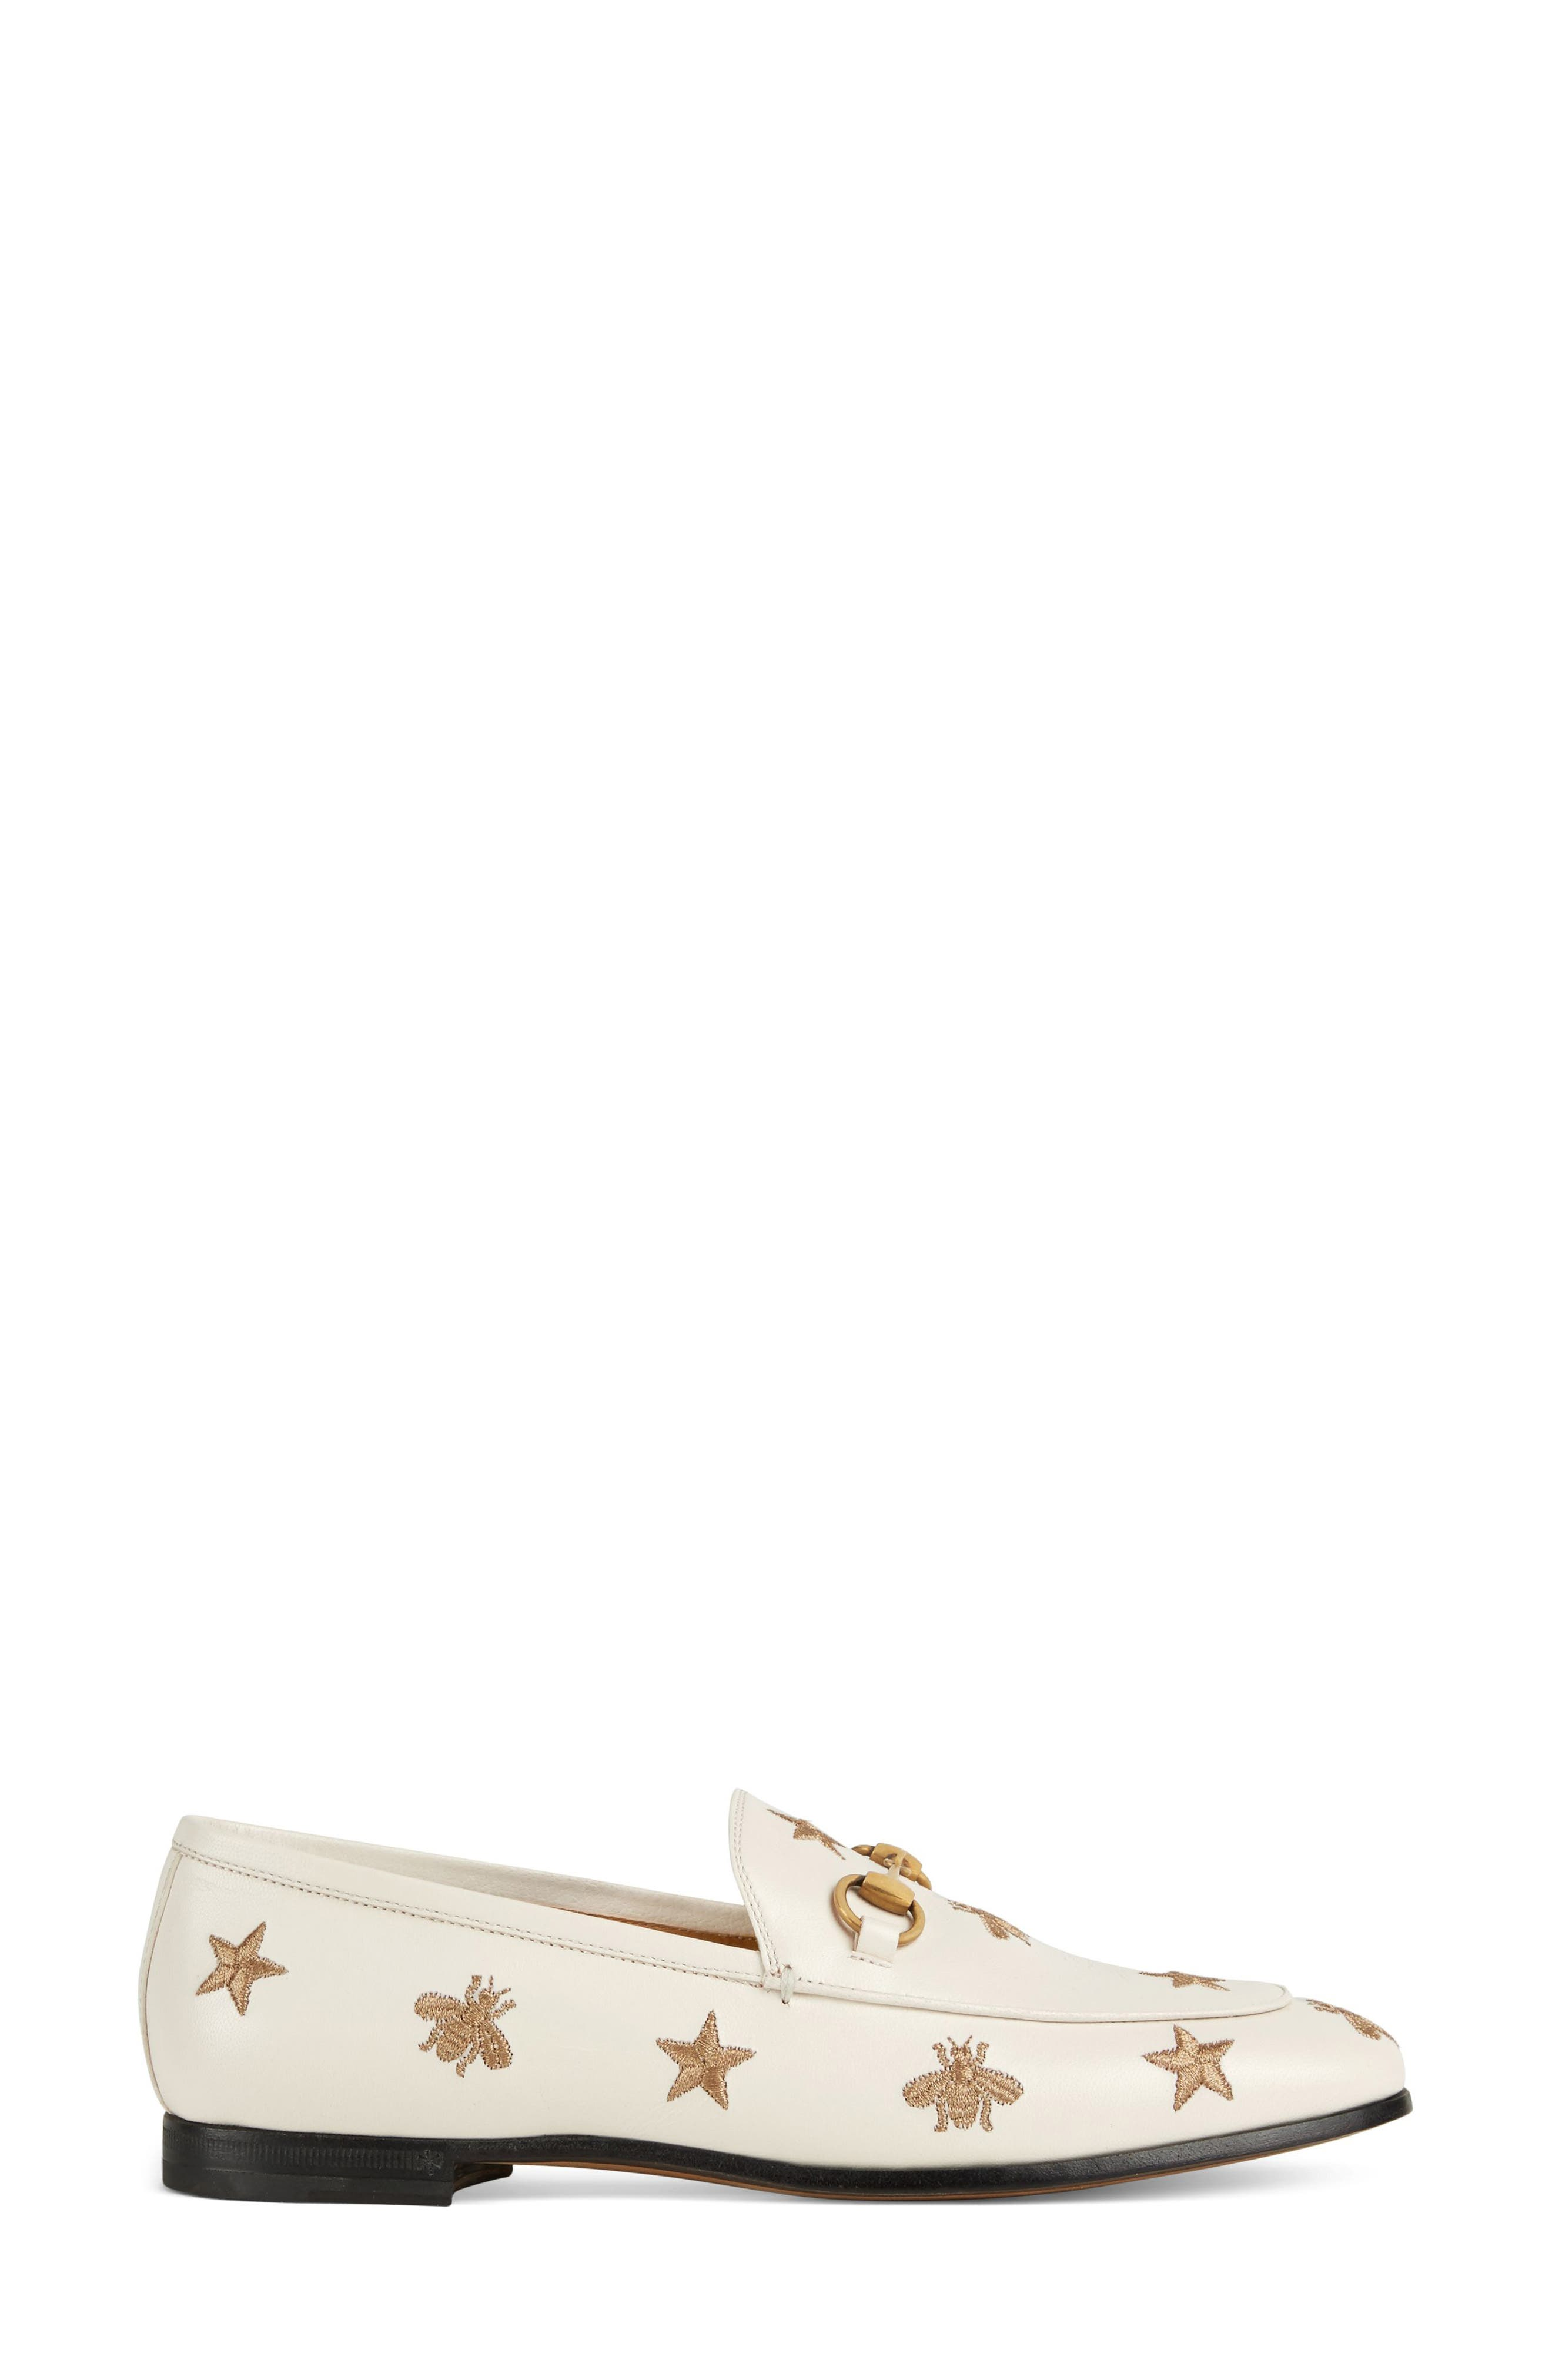 Jordaan Embroidered Bee Loafer,                             Alternate thumbnail 2, color,                             Mystic White